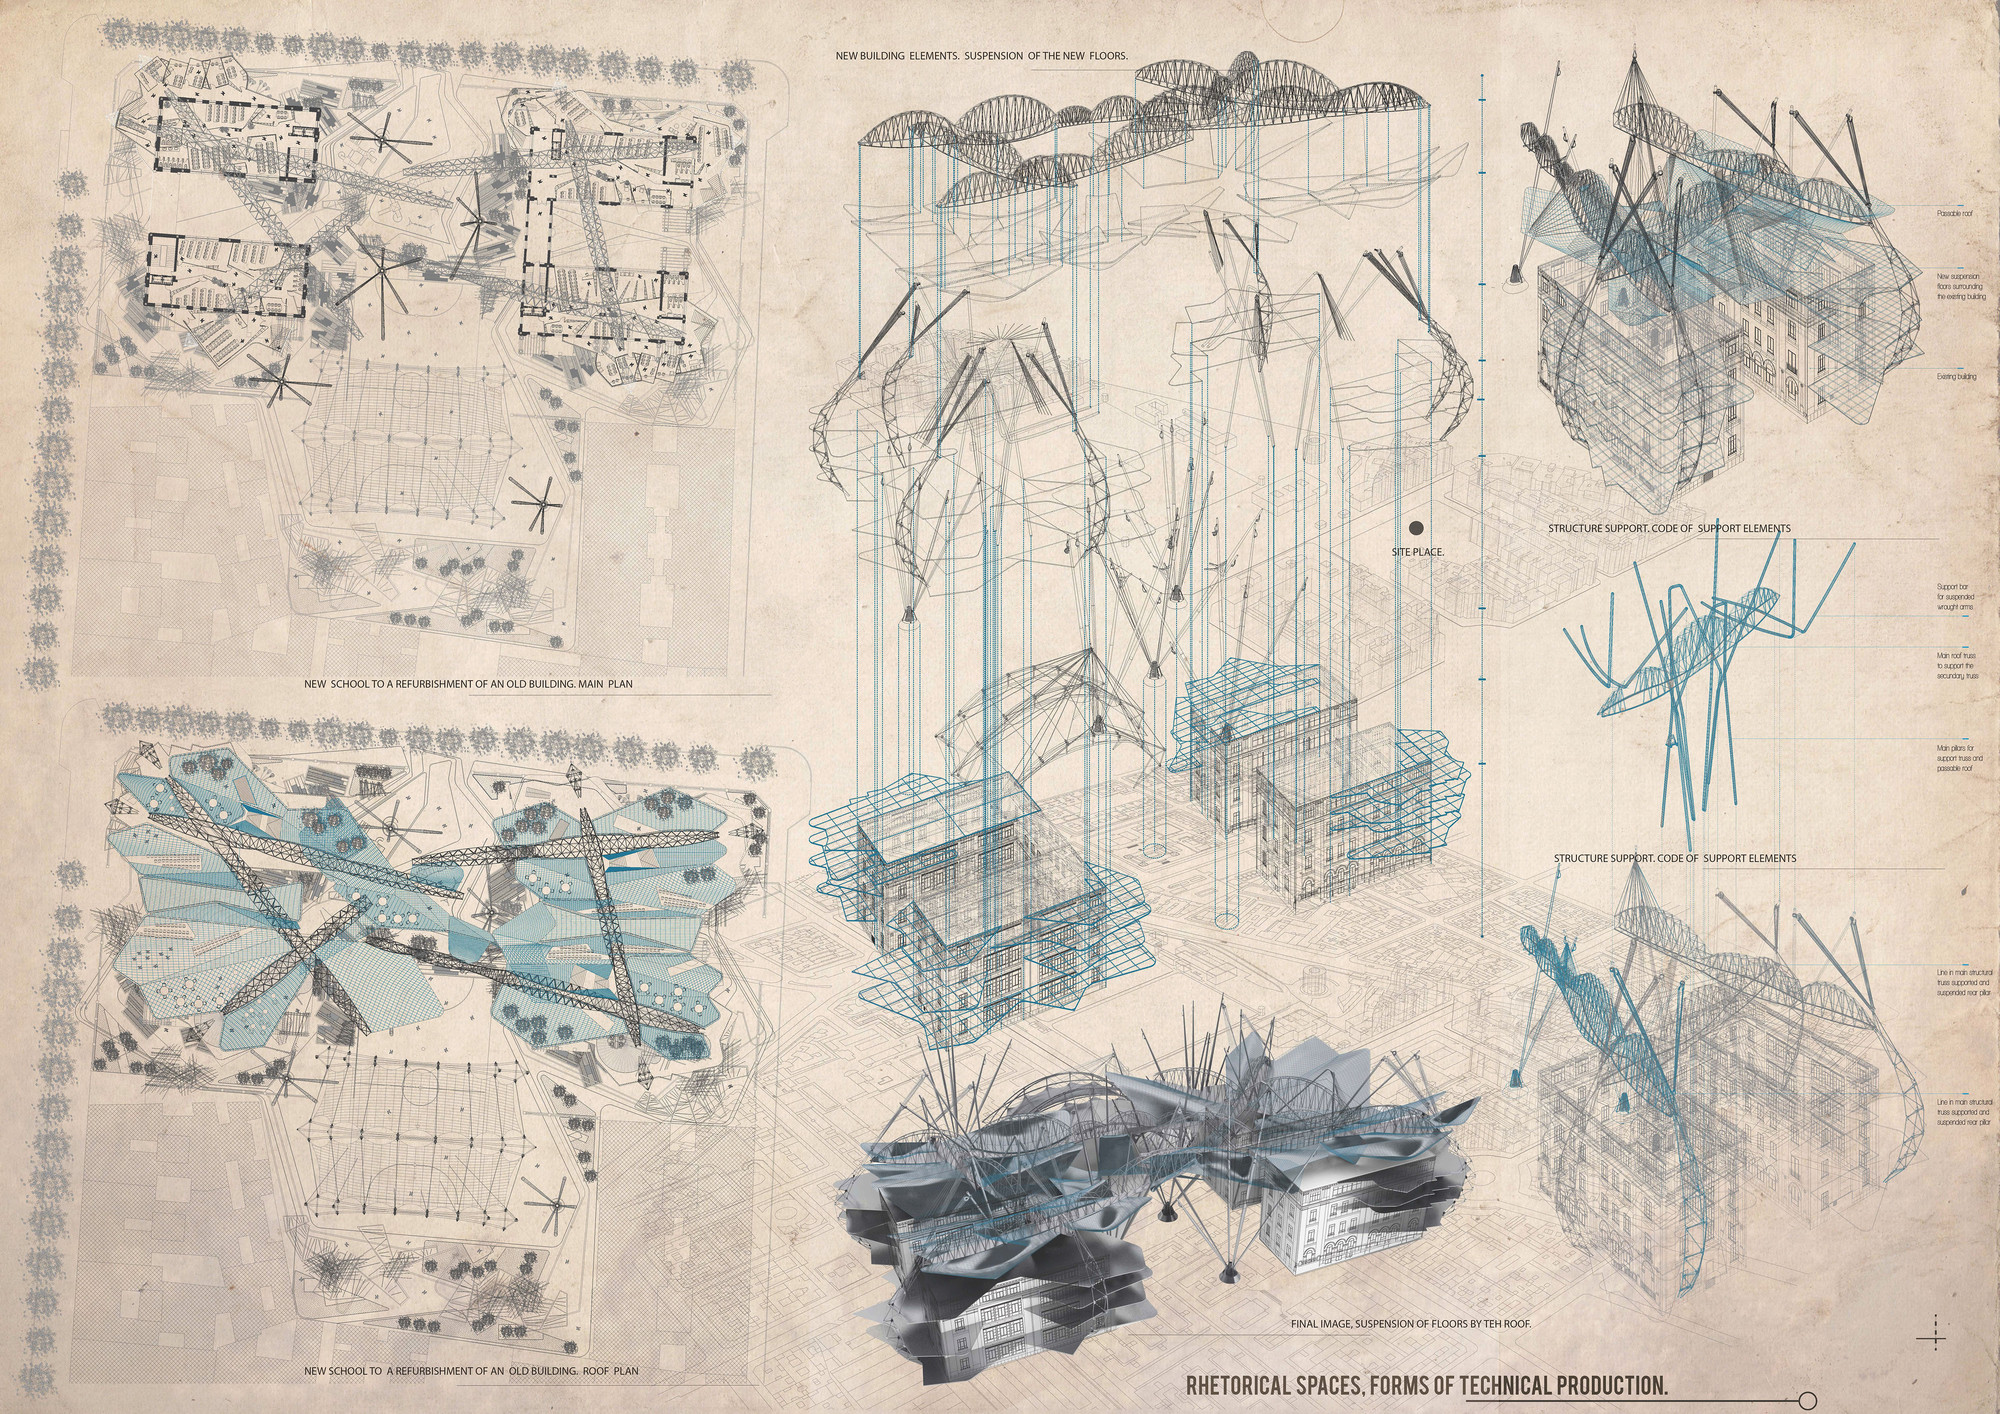 Mención Honrosa: Rethorical spaces forms of technical production. Image Courtesy of IS ARCH